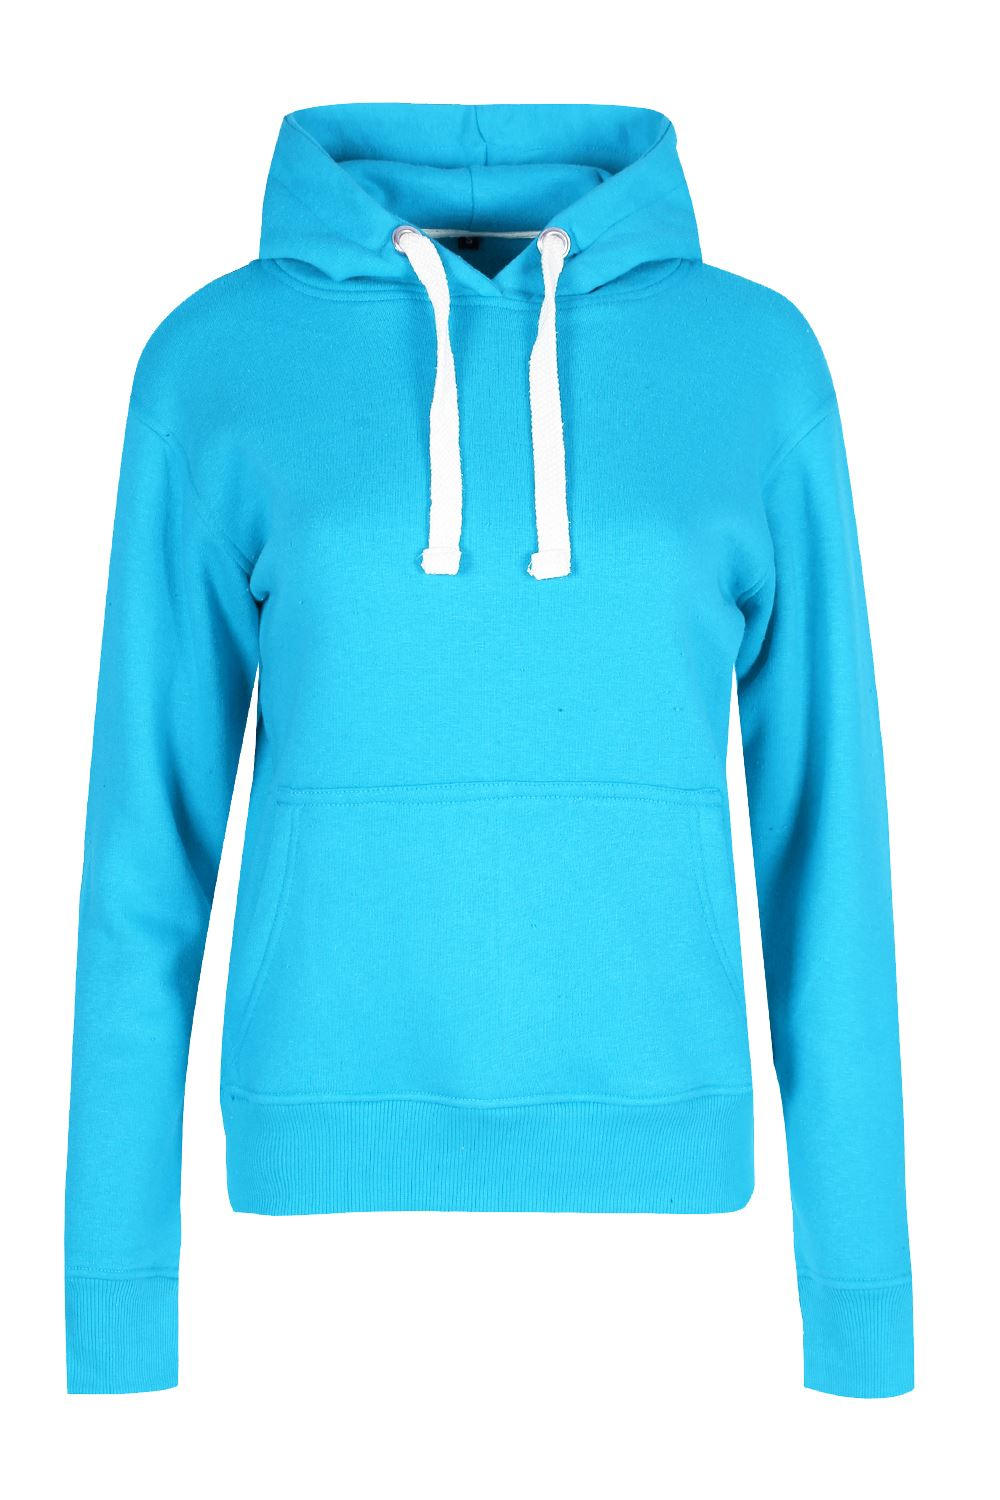 Hoodies Jumpers & Knitwear. Hoodies. Jumpers. Knits. Fleece Womens Paradise Sound Short Sleeved Fleece Jumper. AUD Quick Shop Womens Sedona Long Sleeved Hooded Top. AUD Quick Shop View Details. Womens Just Simple Crew Jumper. AUD Quick.